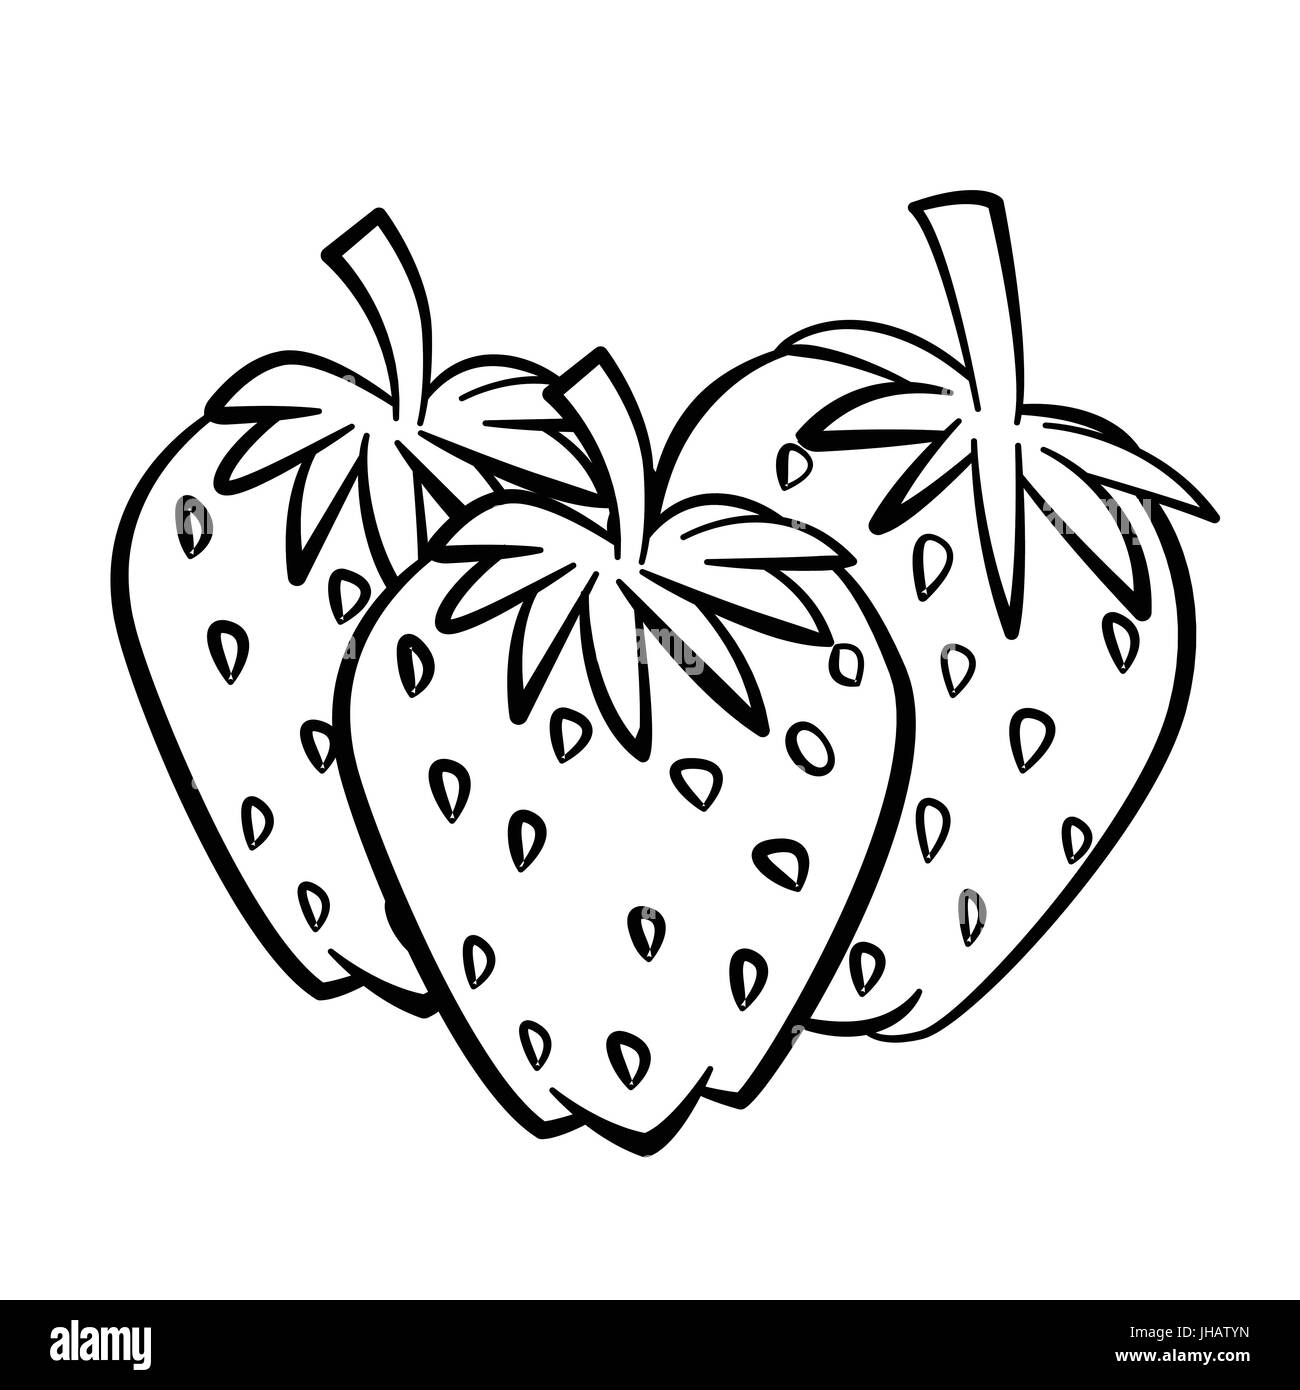 A black and white drawing of a strawberry Stock Photo, Royalty ... for Clipart Strawberry Black And White  56bof